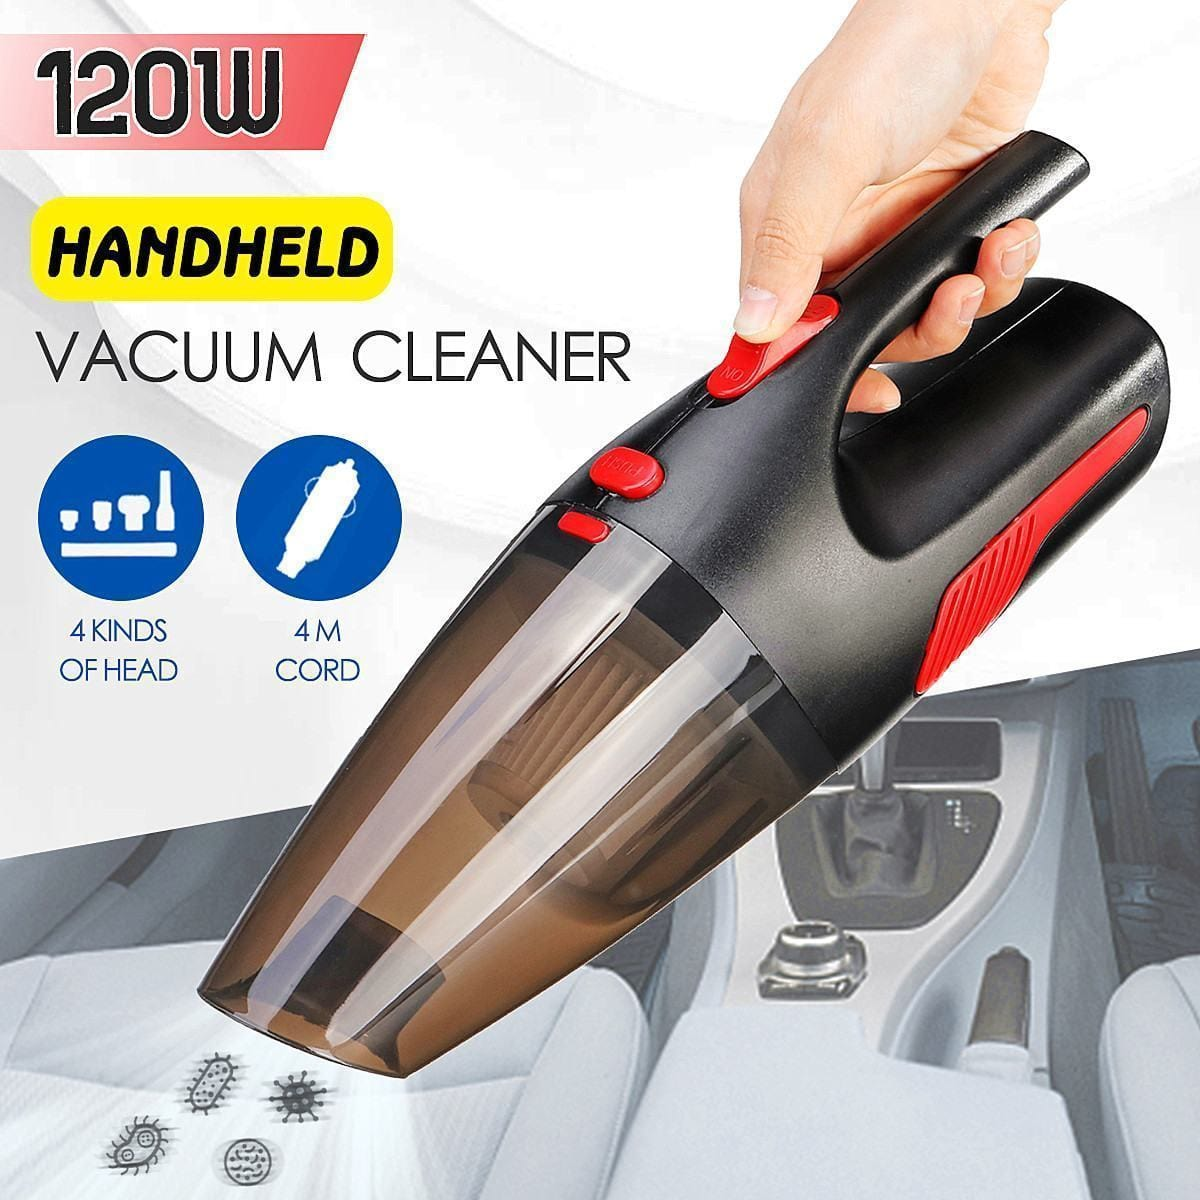 WarmHome Appliance Shop Vacuum Cleaners TURBINEX Portable Handheld Car Vacuum Cleaner 120W 12V